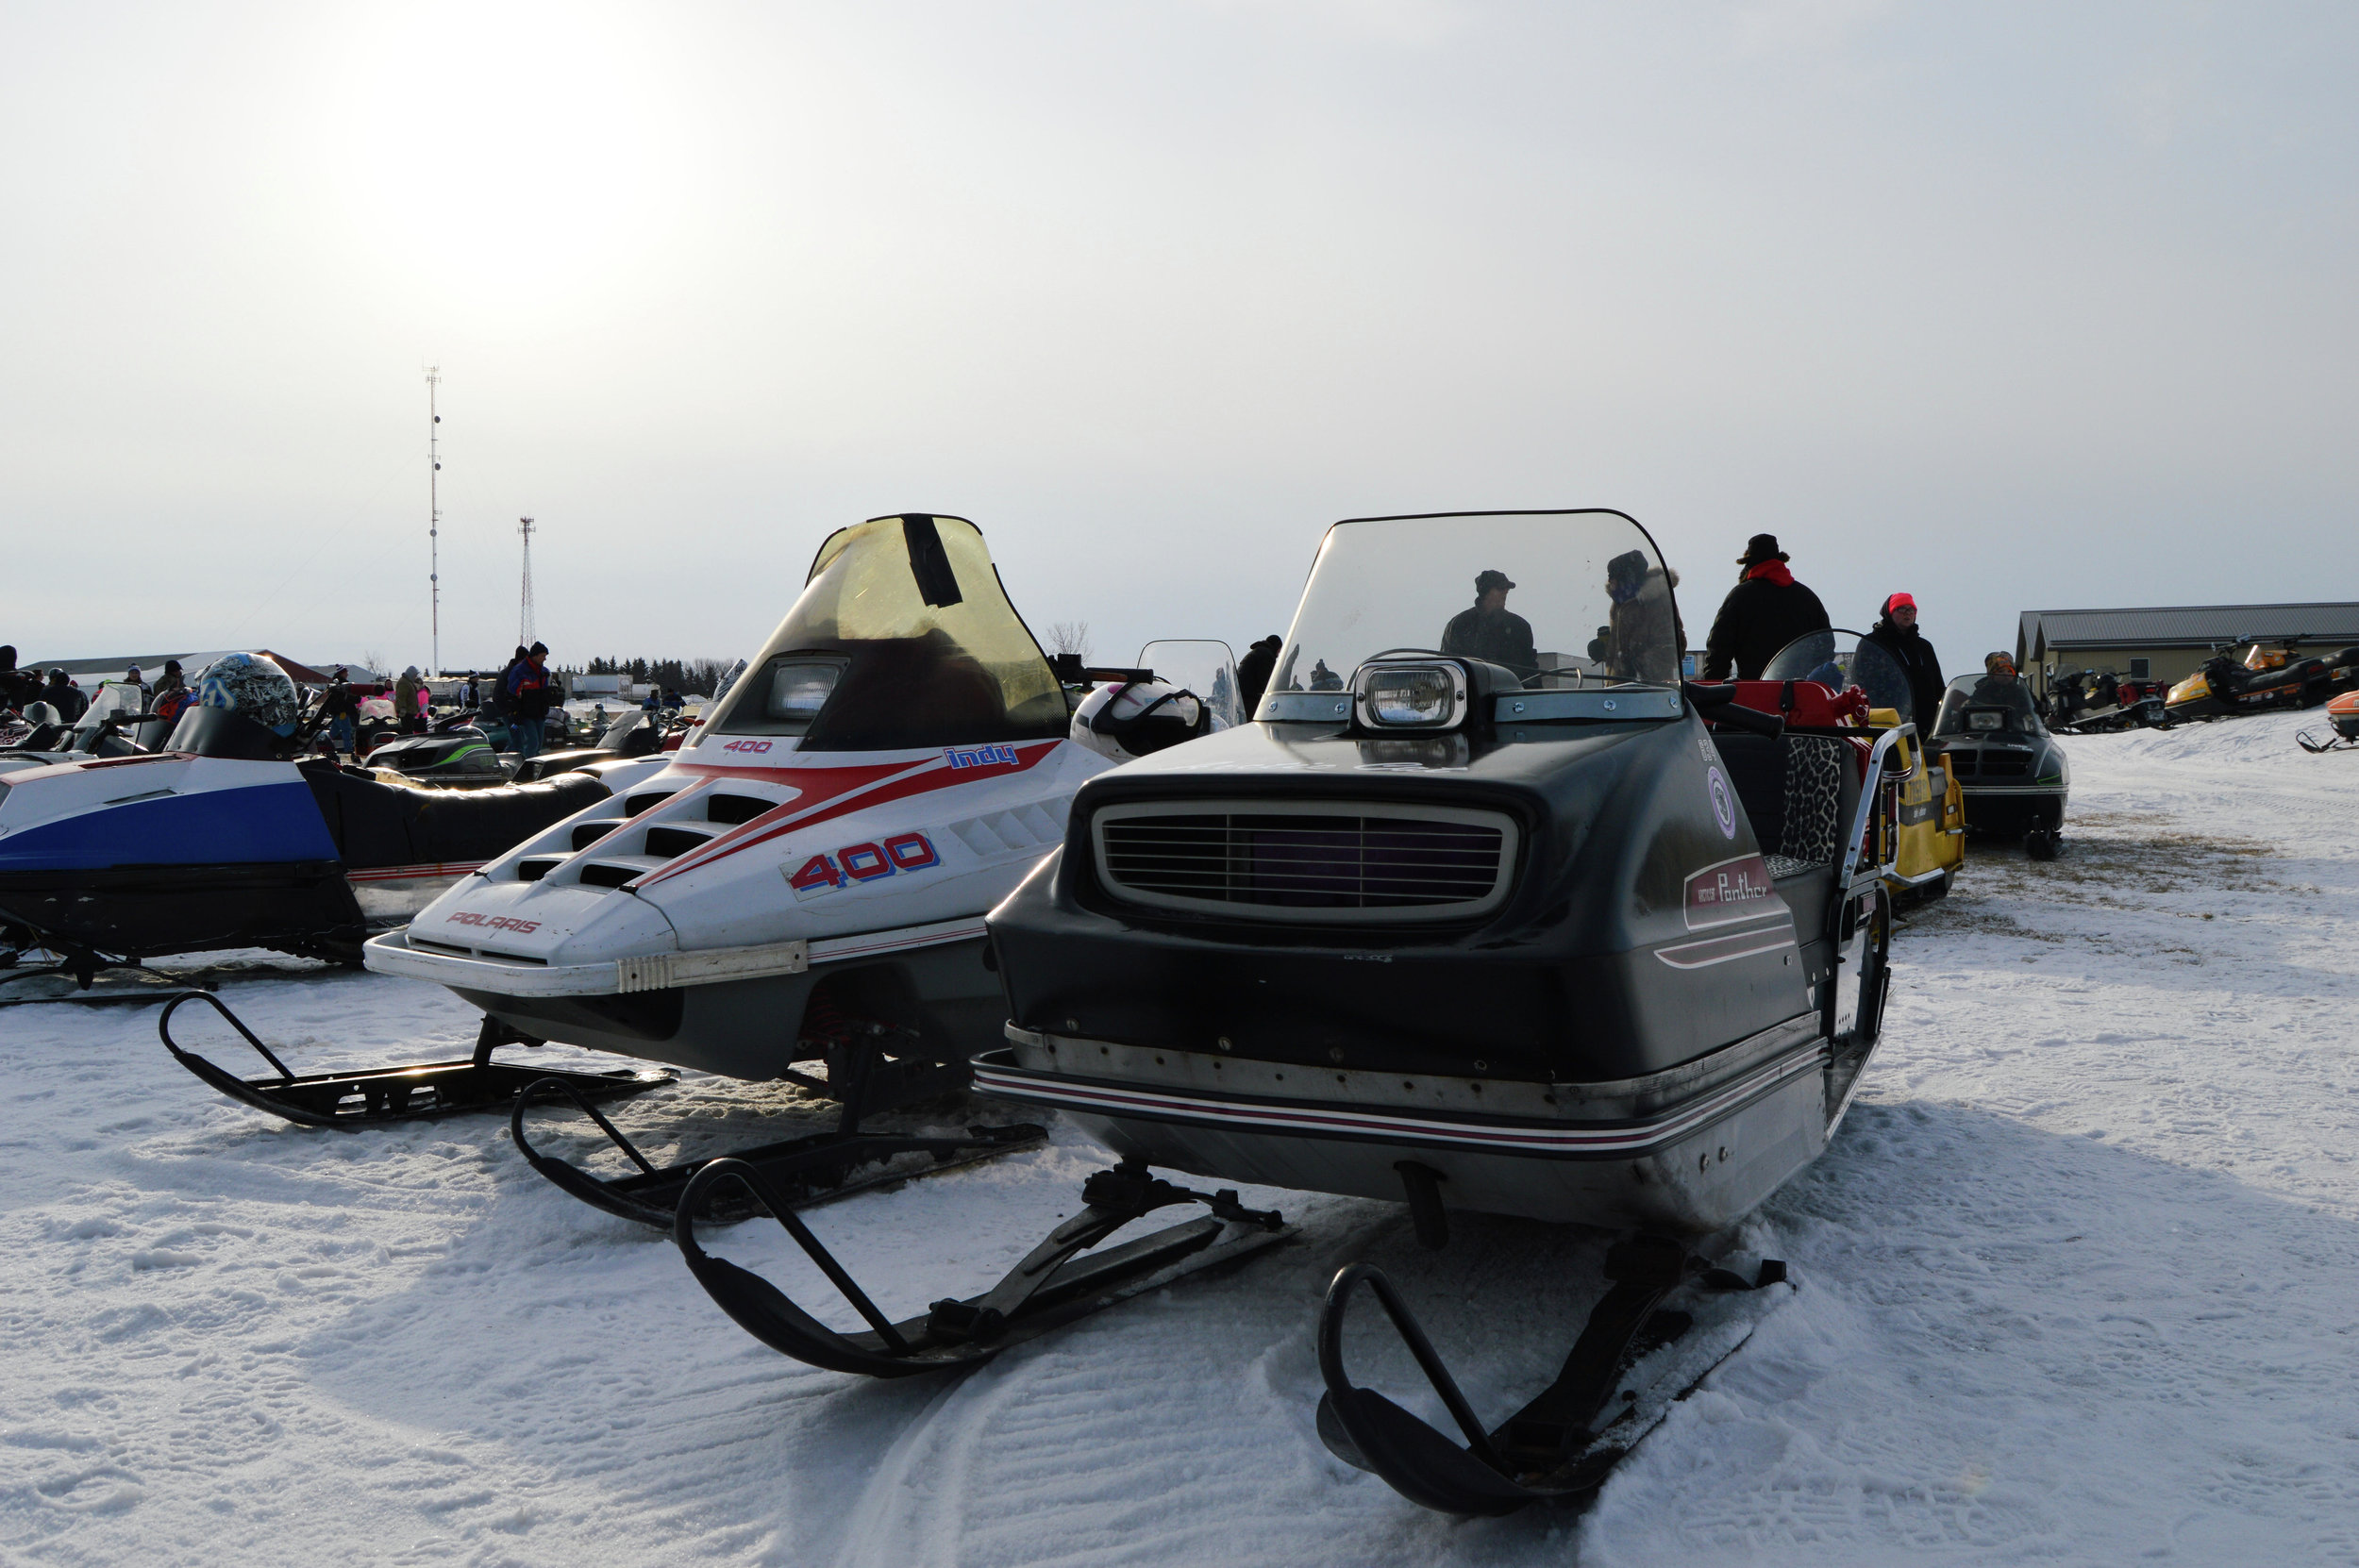 Waiting to head out on the 2017 Old Timers Run, riders and sleds mingled outside the Lake Park Liquor Store during the early hours of the morning. (Tribune file photo)